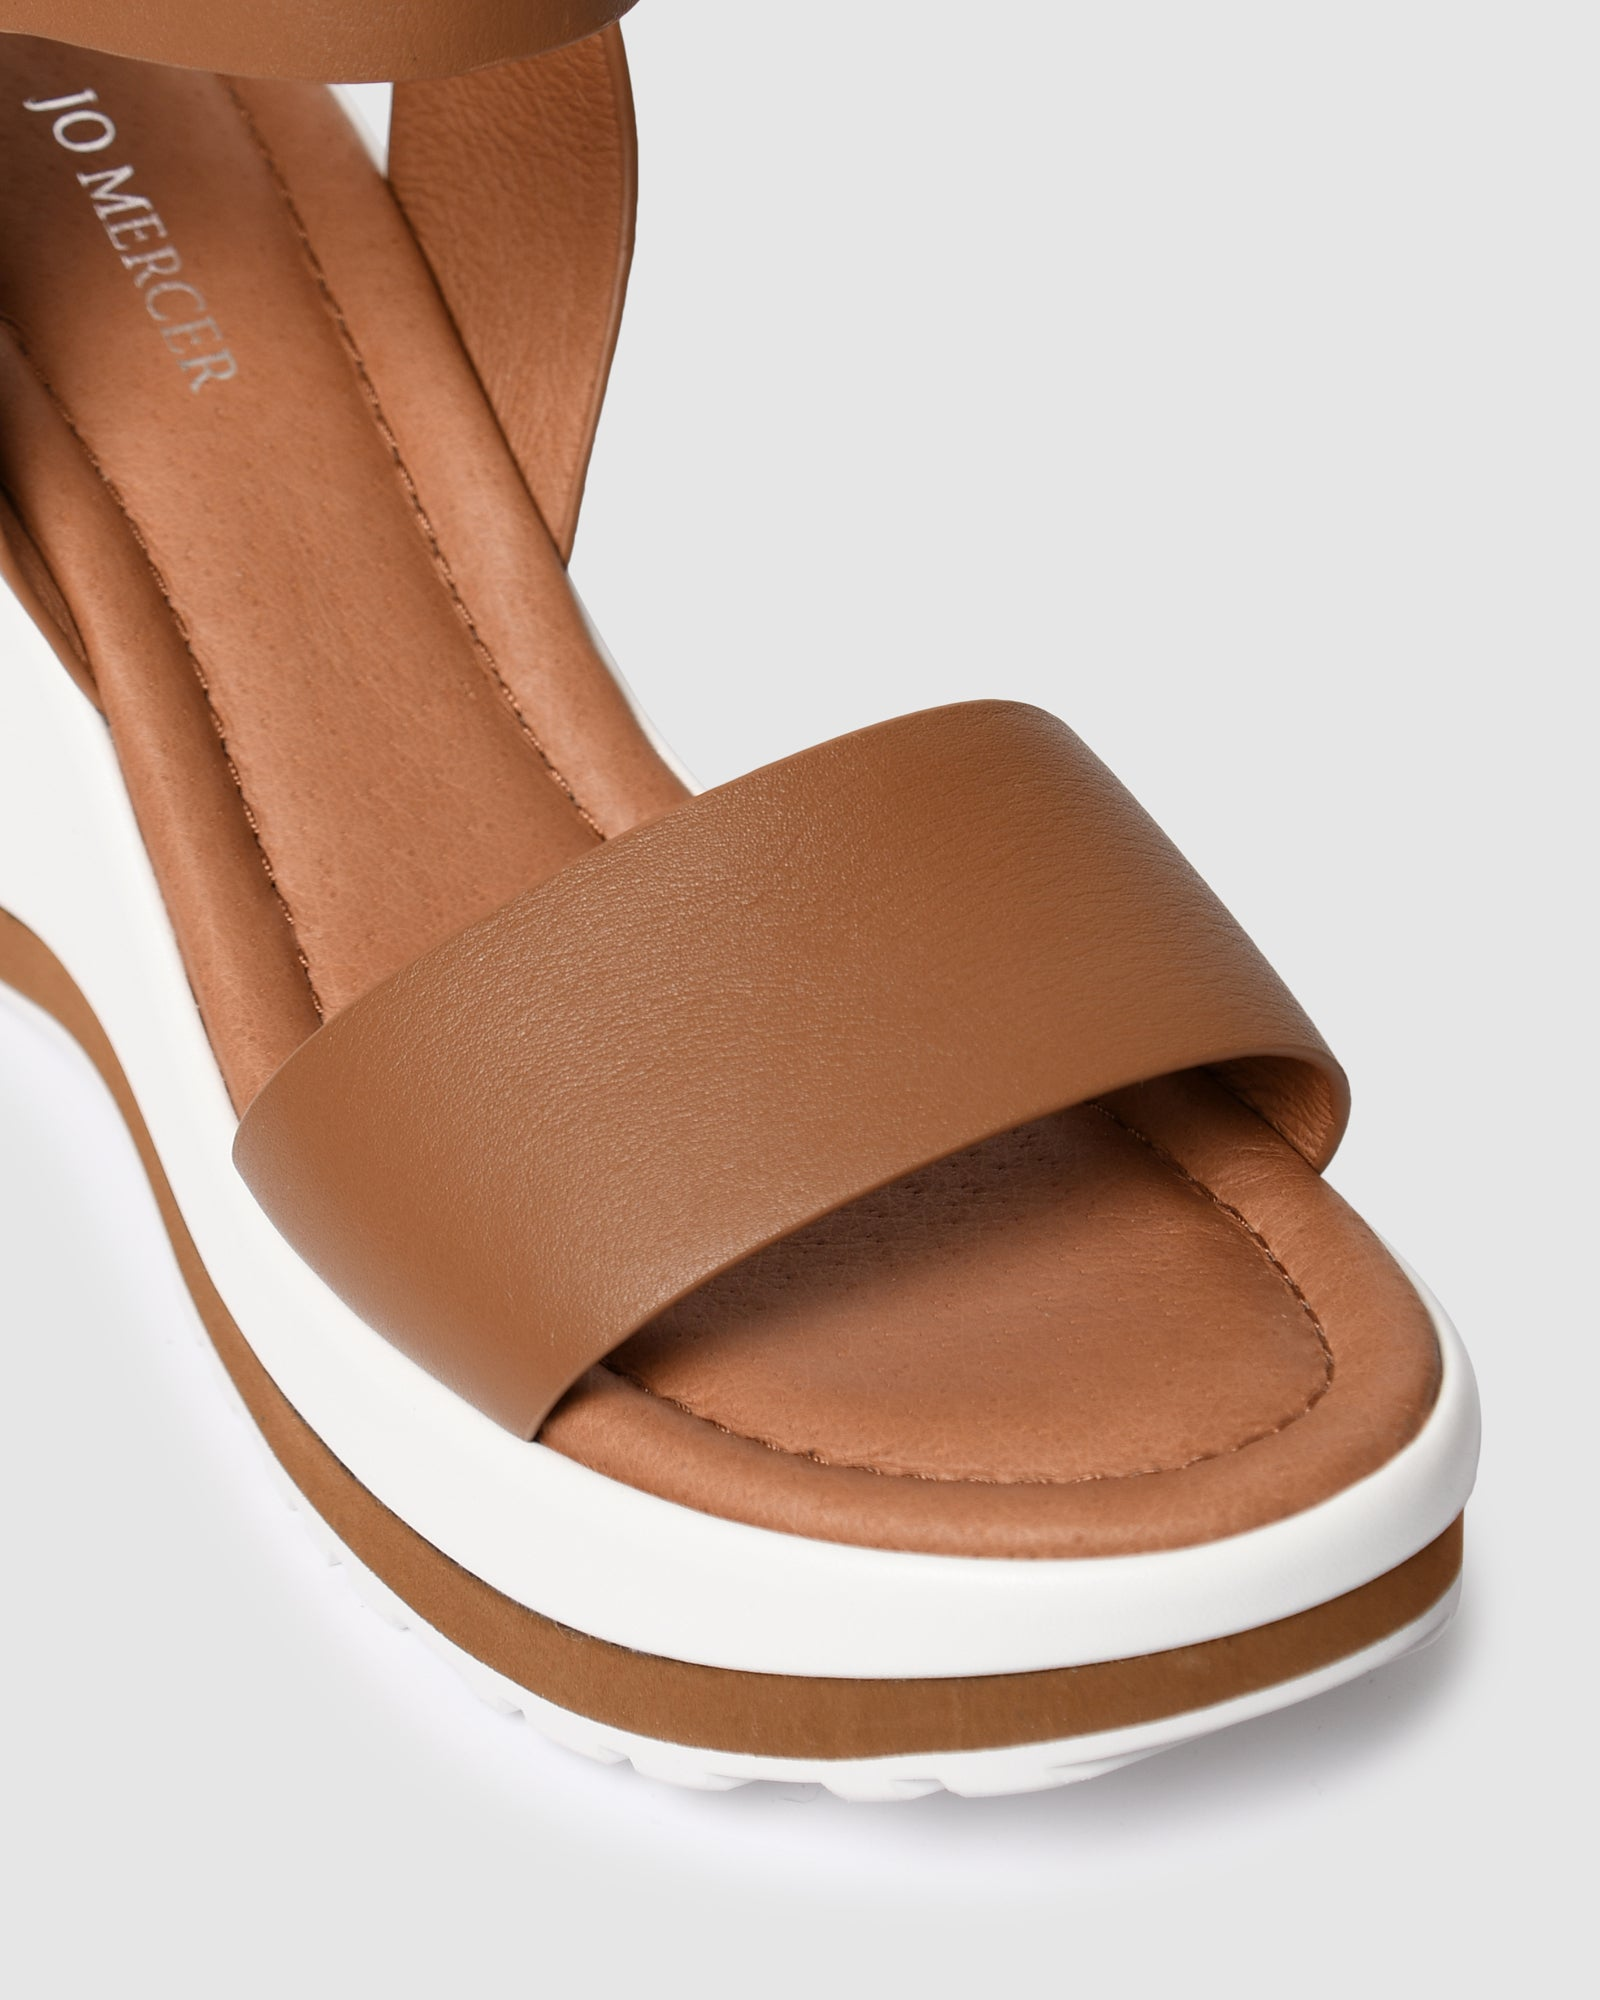 NIXON MID HEEL WEDGES TAN LEATHER